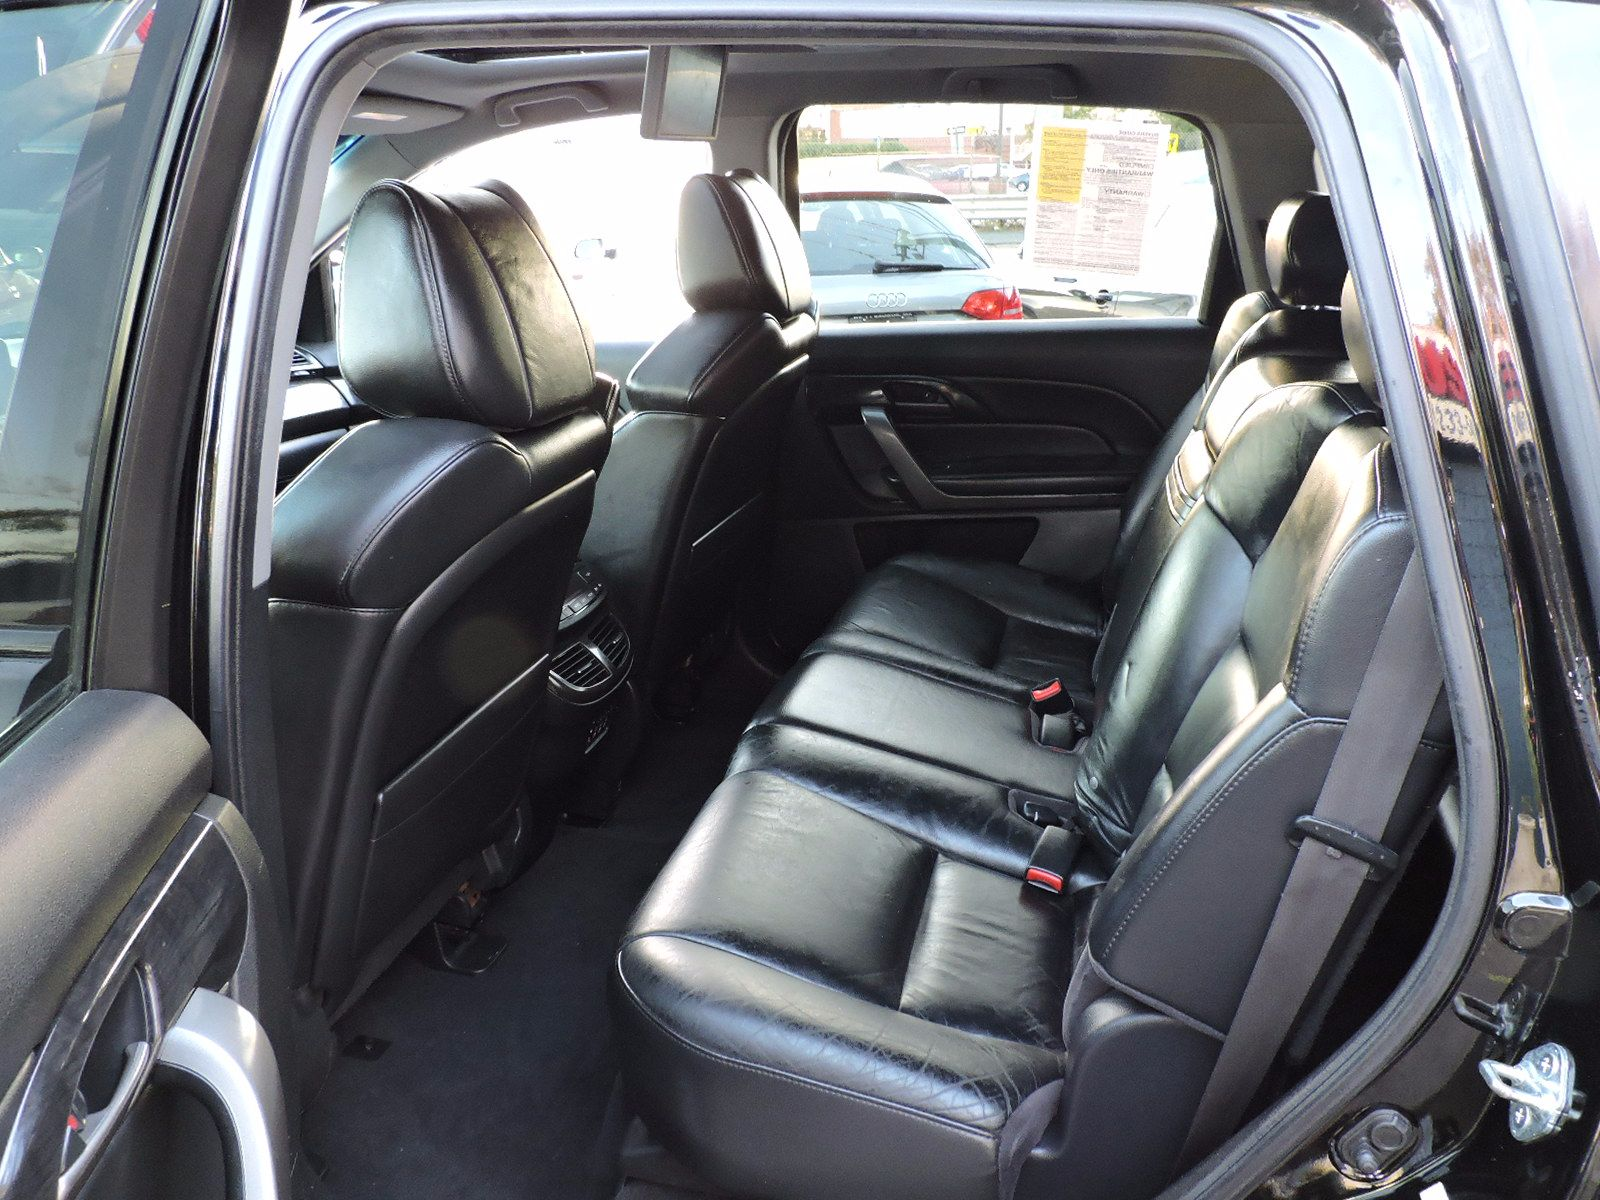 2008 Acura MDX All Wheel Drive - Navigation - DVD System